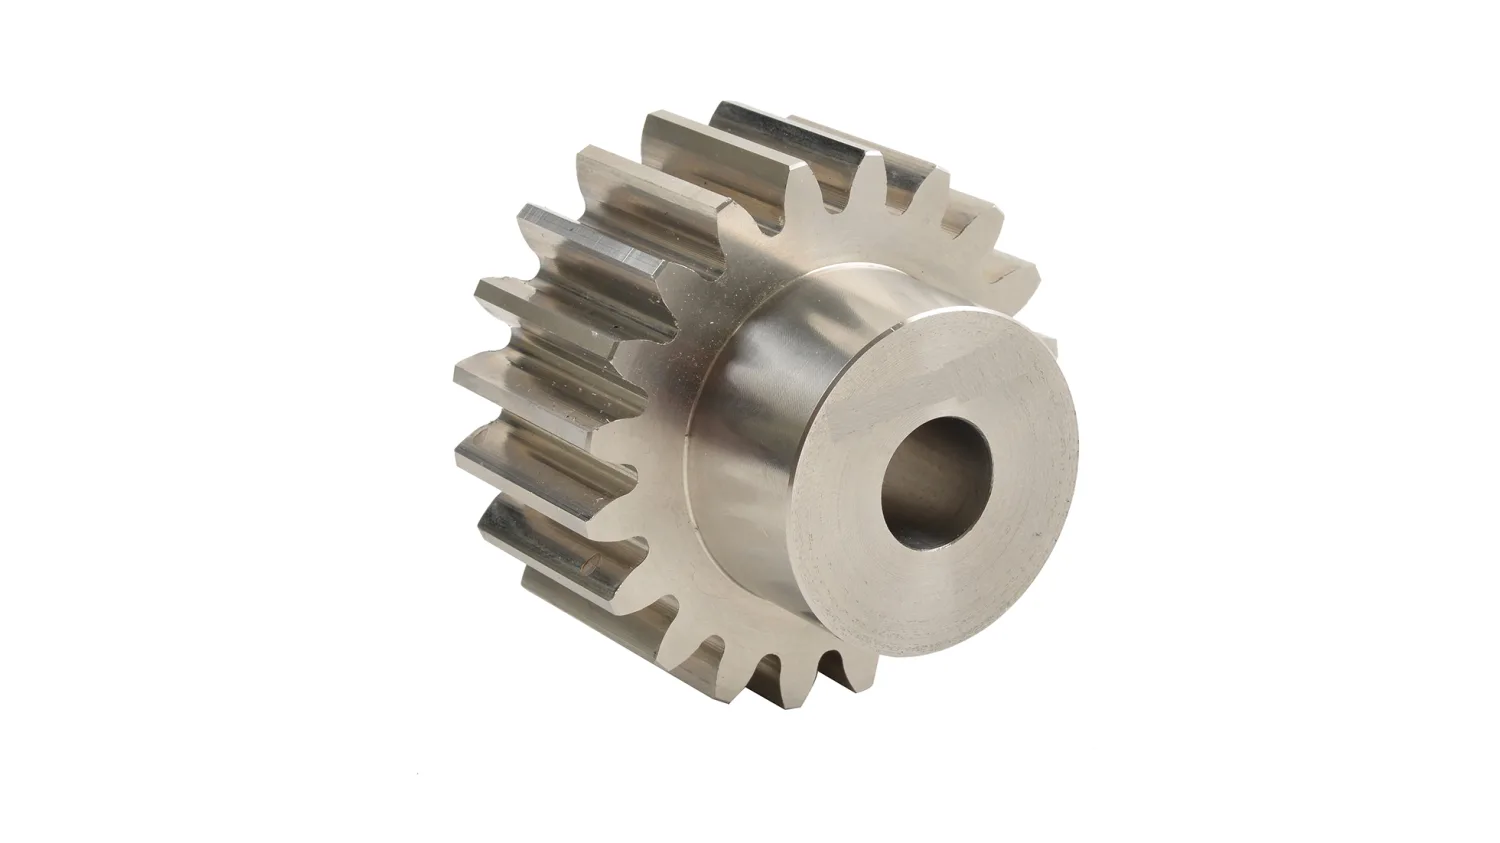 2-5-Mod-x-53-Tooth-Metric-Spur-Gear-in-Steel